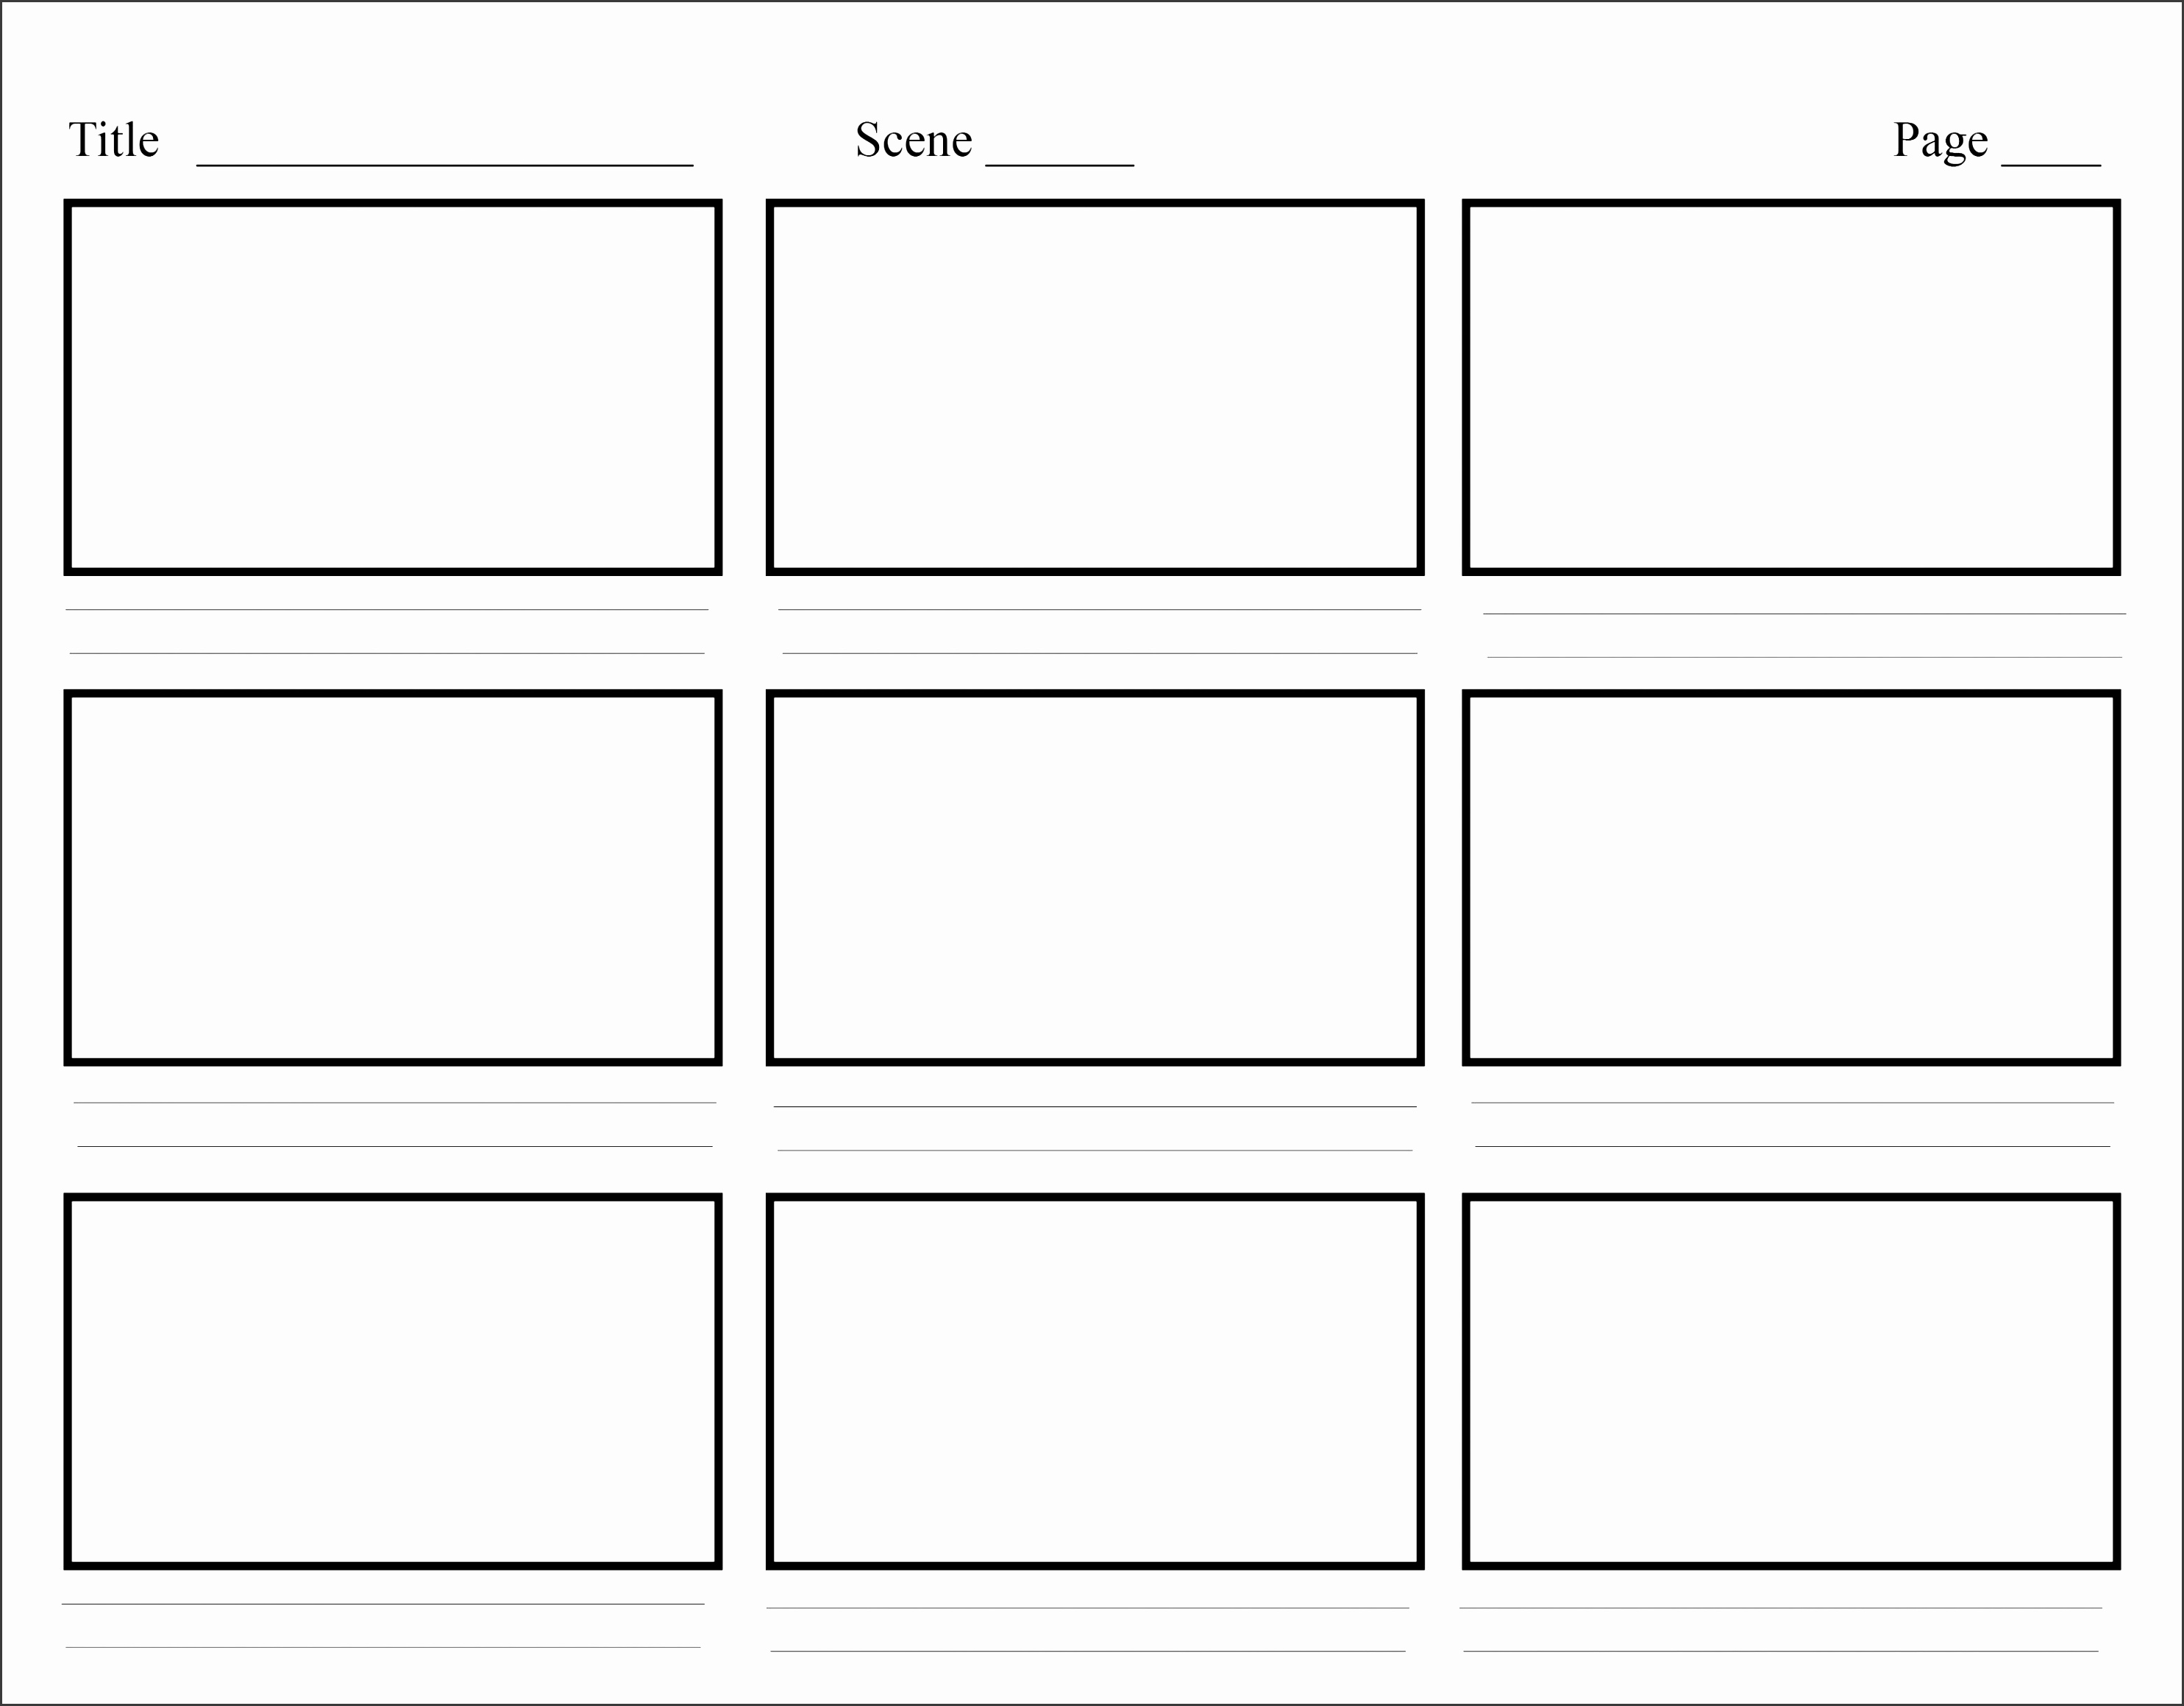 6 Storyboard Template In Word